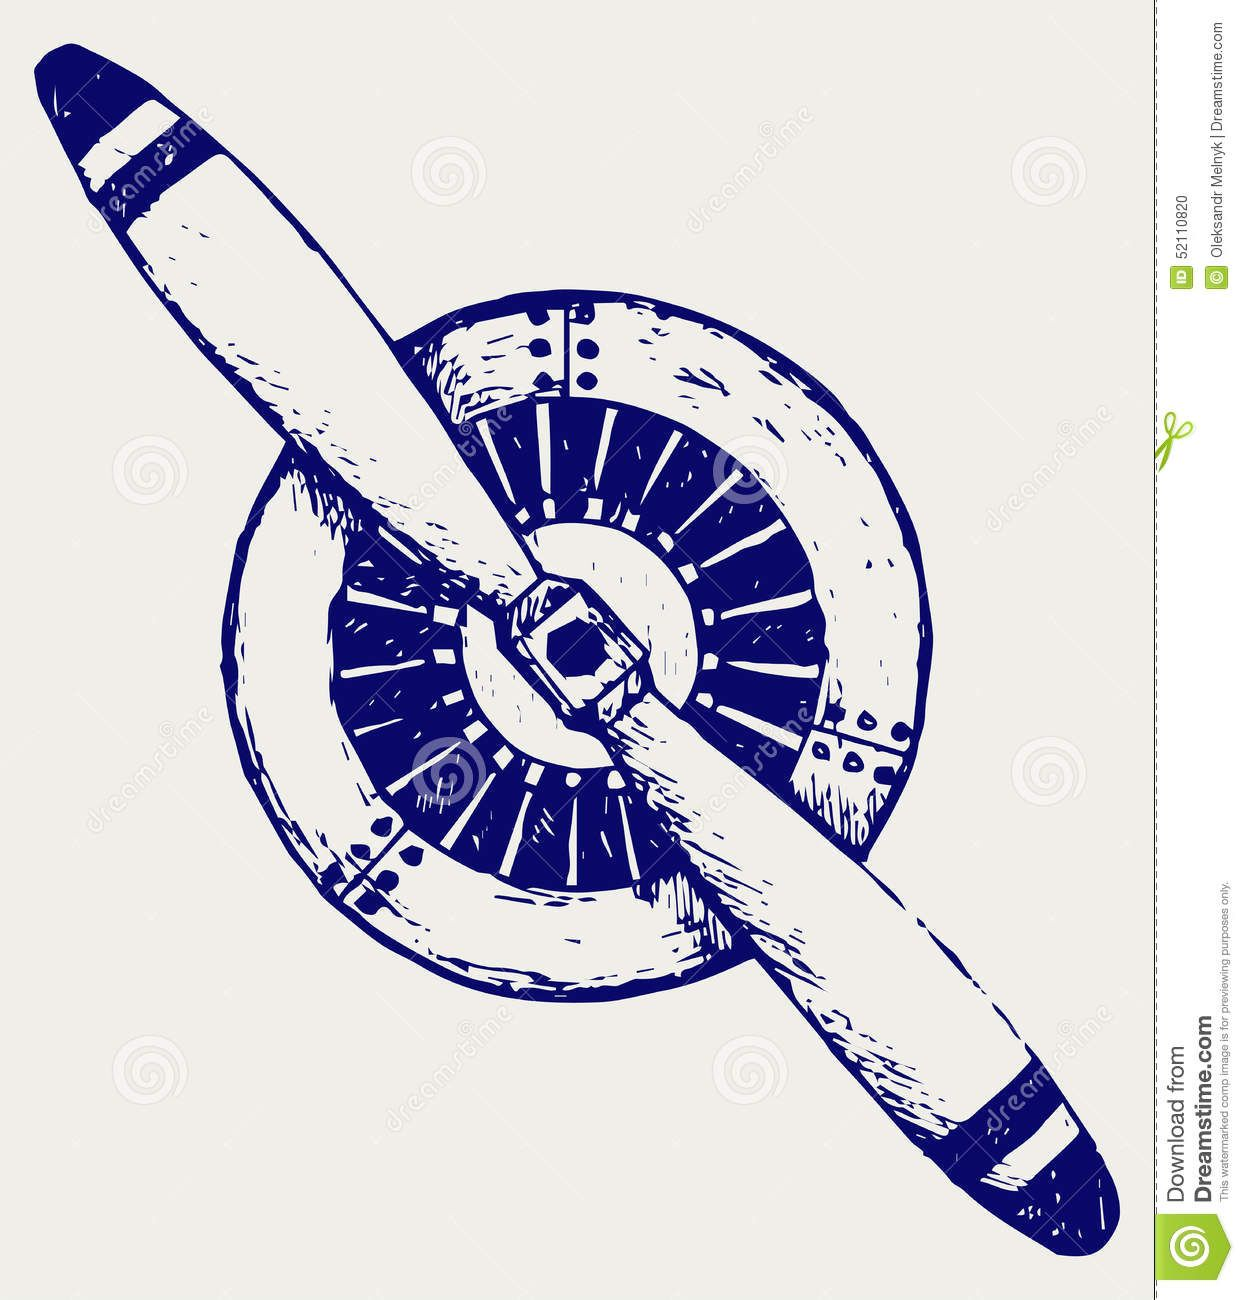 Aircraft radial engine clip clipart